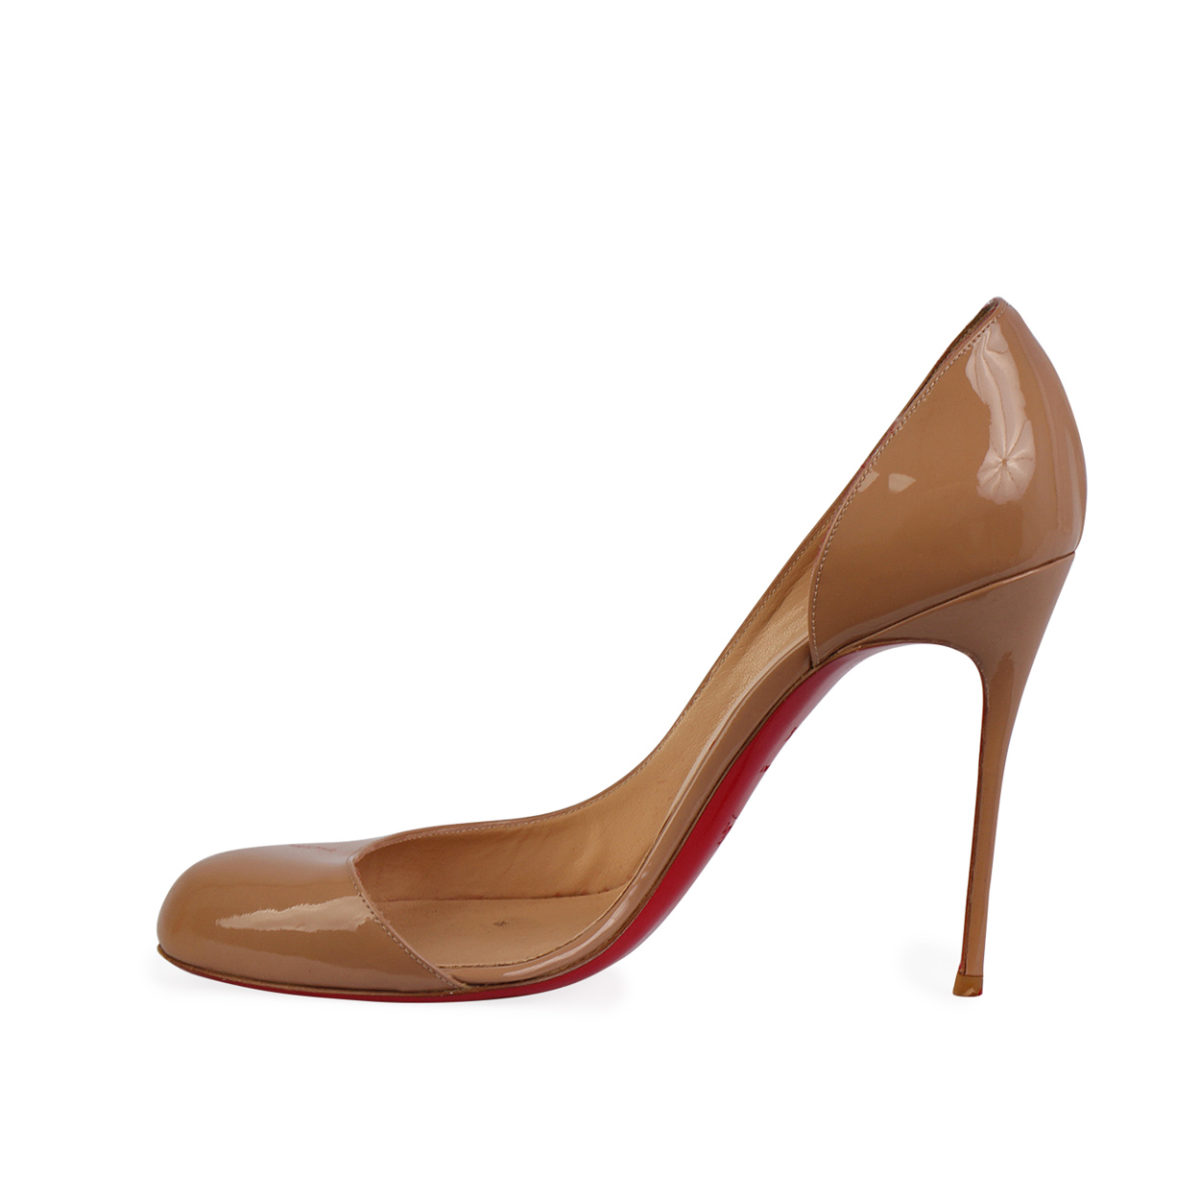 buy popular 455d1 59807 CHRISTIAN LOUBOUTIN Patent Leather Helmour 110 Pumps Nude - S: 39.5 (6)